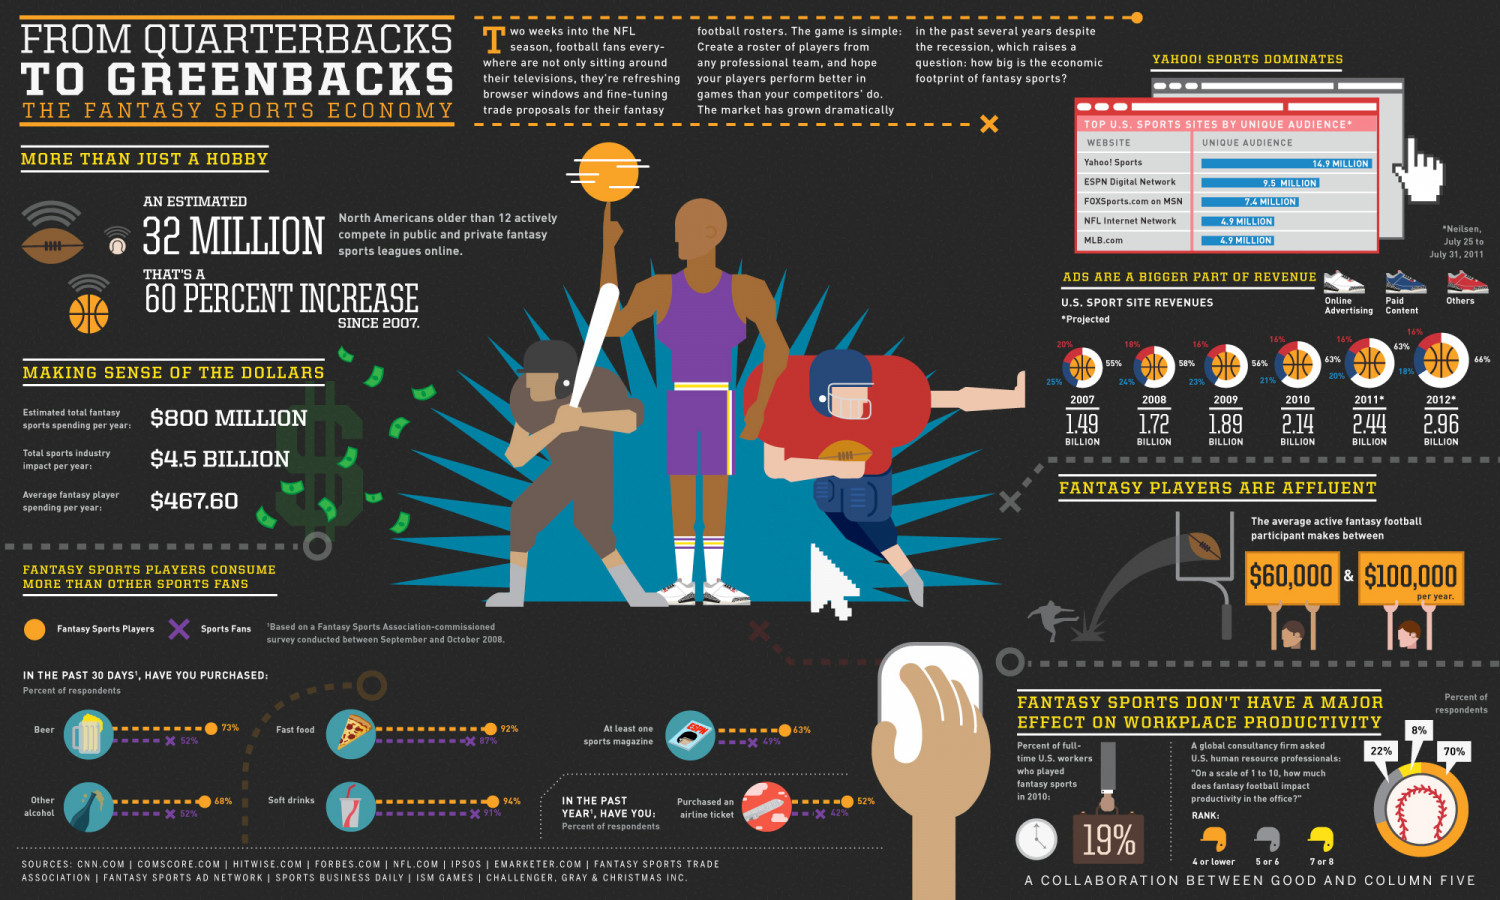 From Quarterbacks to Greenbacks Infographic